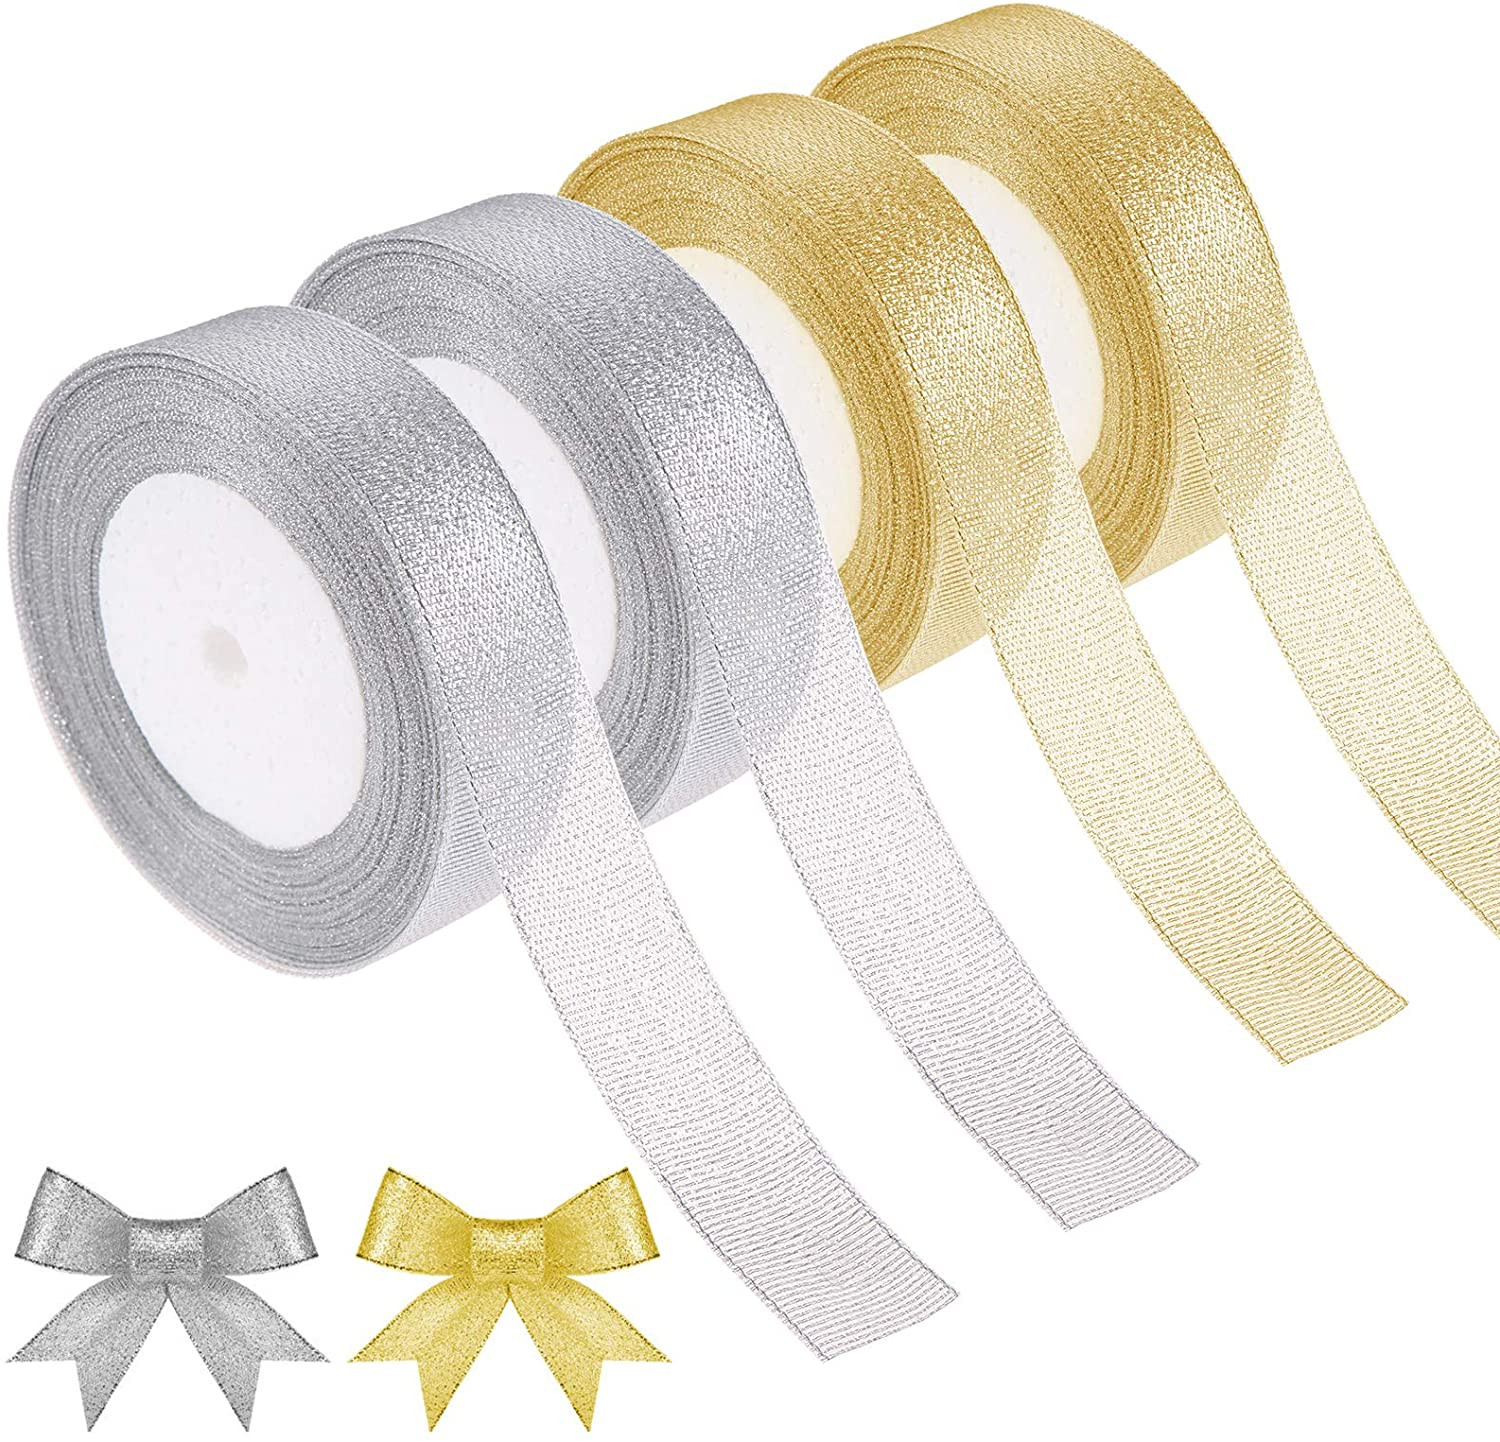 4Roll 25 Yards Organza Ribbon Glitter Trimmings Decorative Ribbons for Gift Wrapping Christmas Festive Decoration